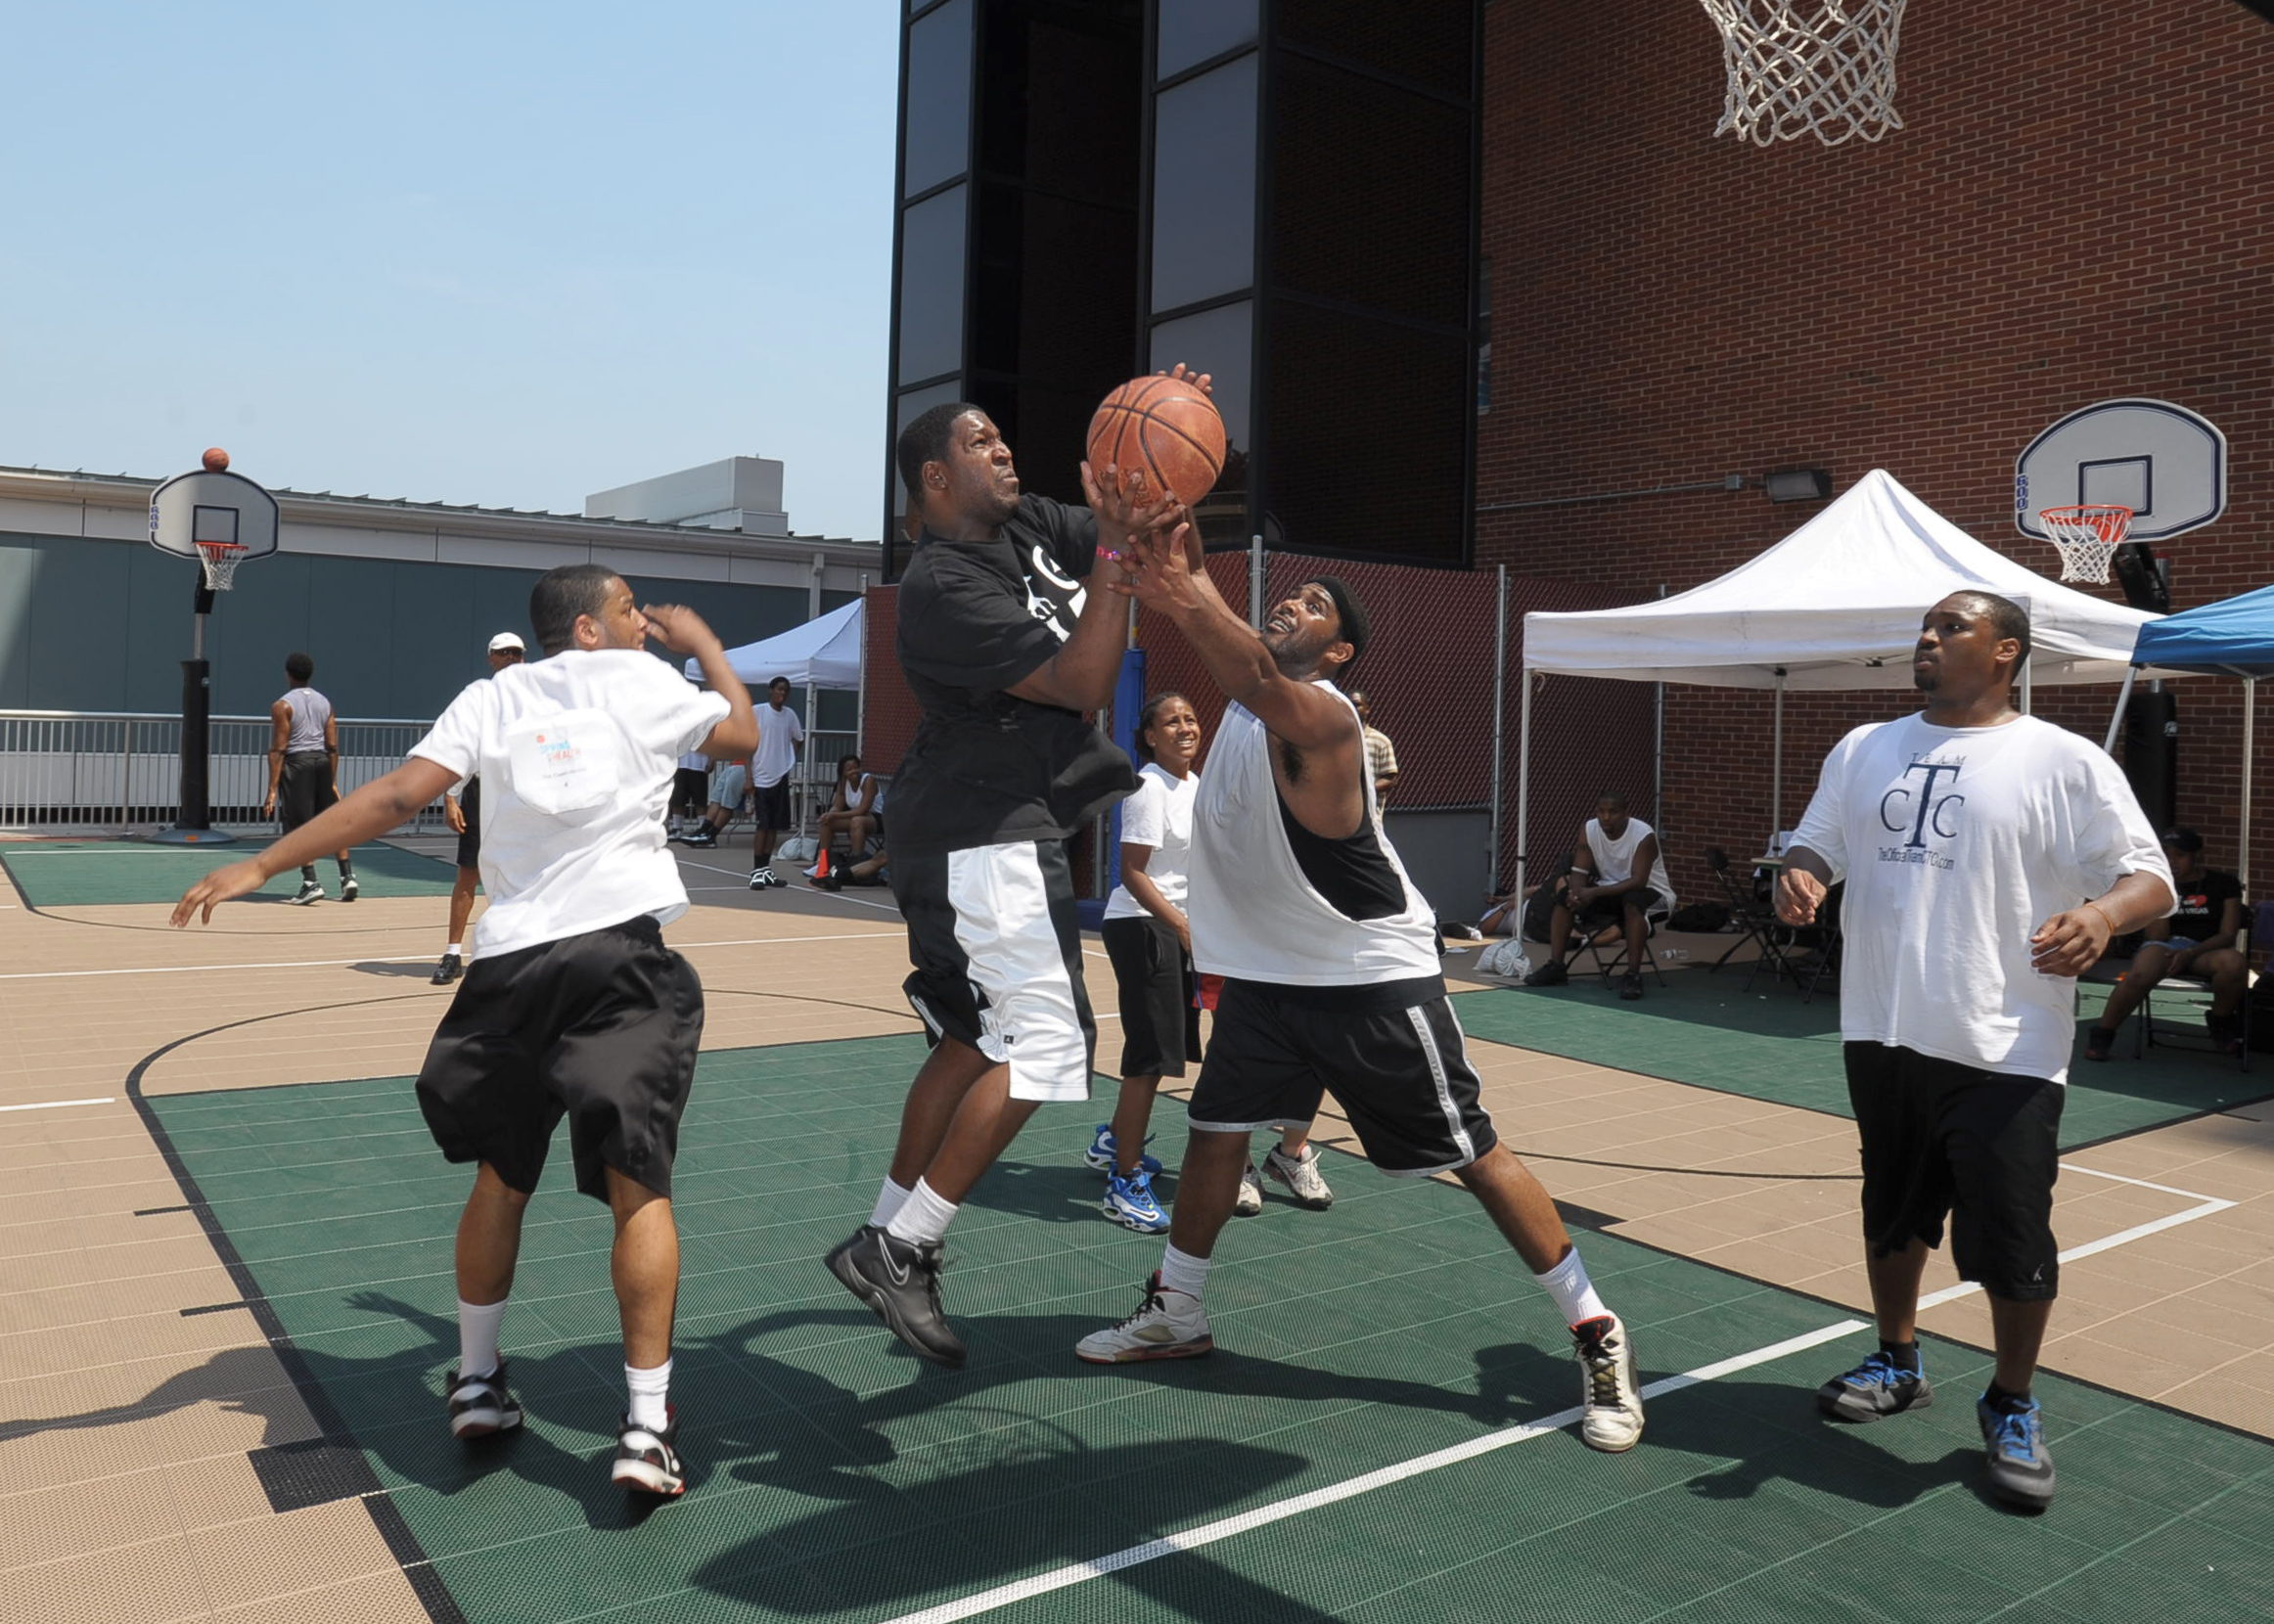 3on3 men's basketball tournament